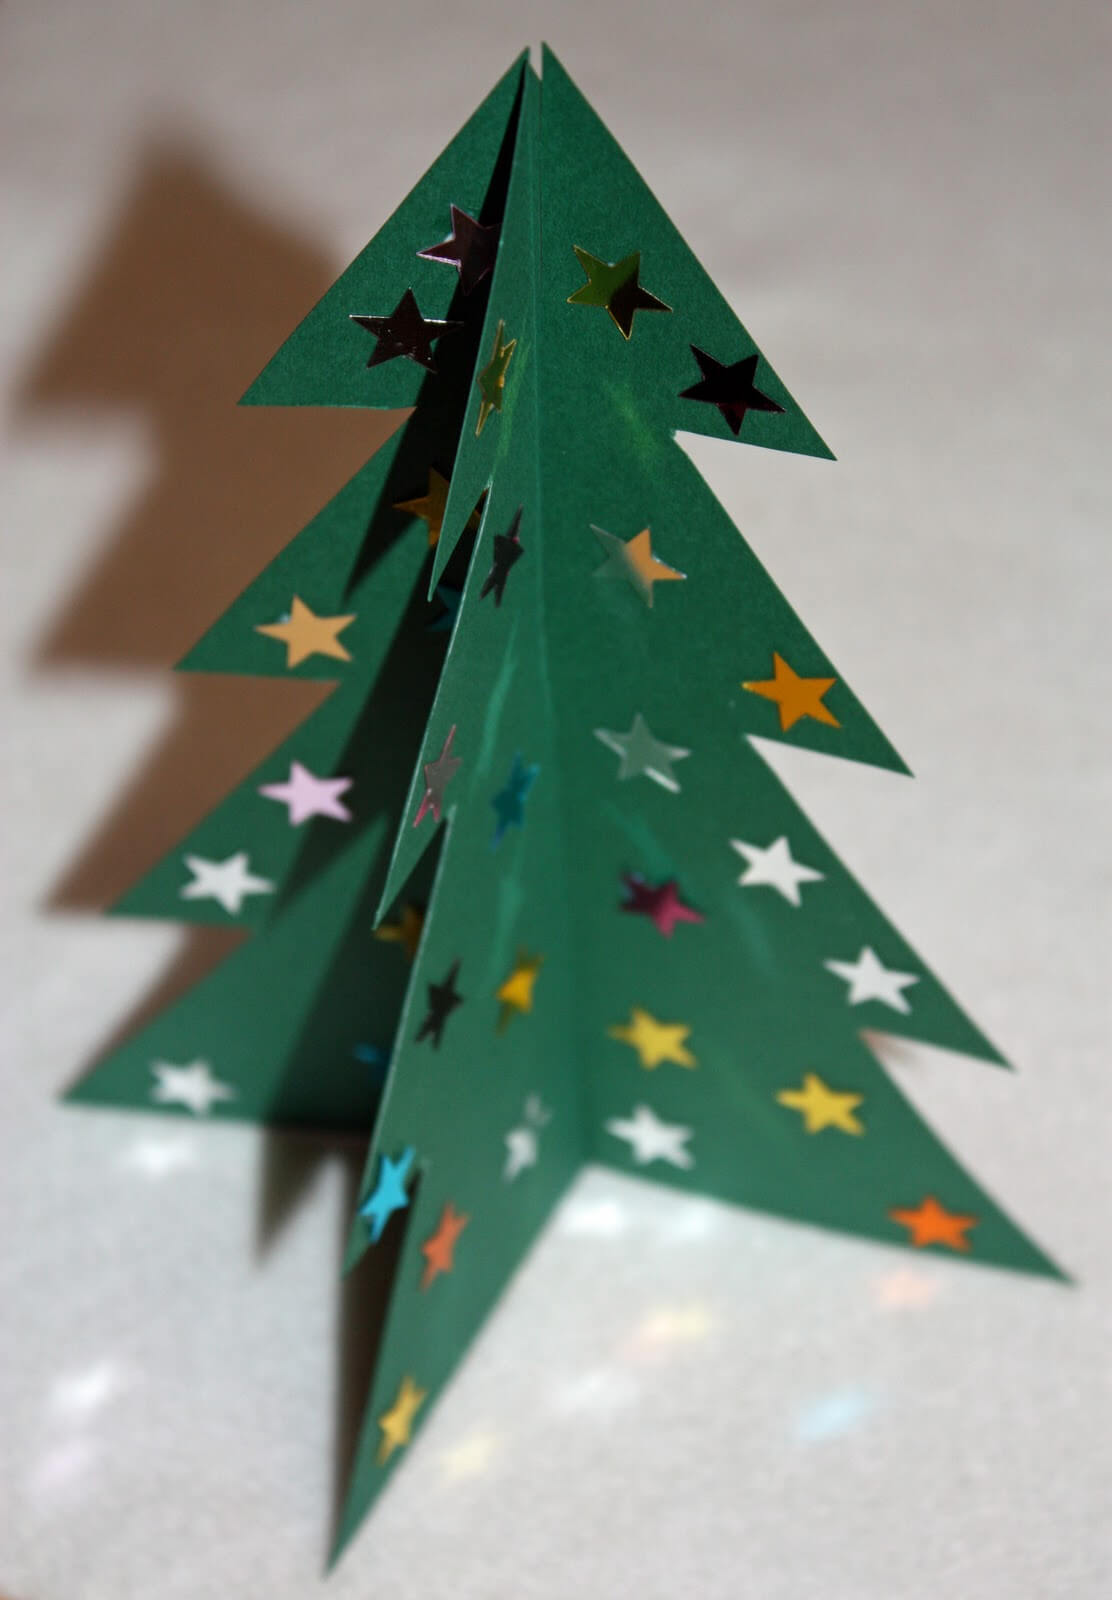 Craft And Activities For All Ages!: Make A 3D Card Christmas With Regard To 3D Christmas Tree Card Template